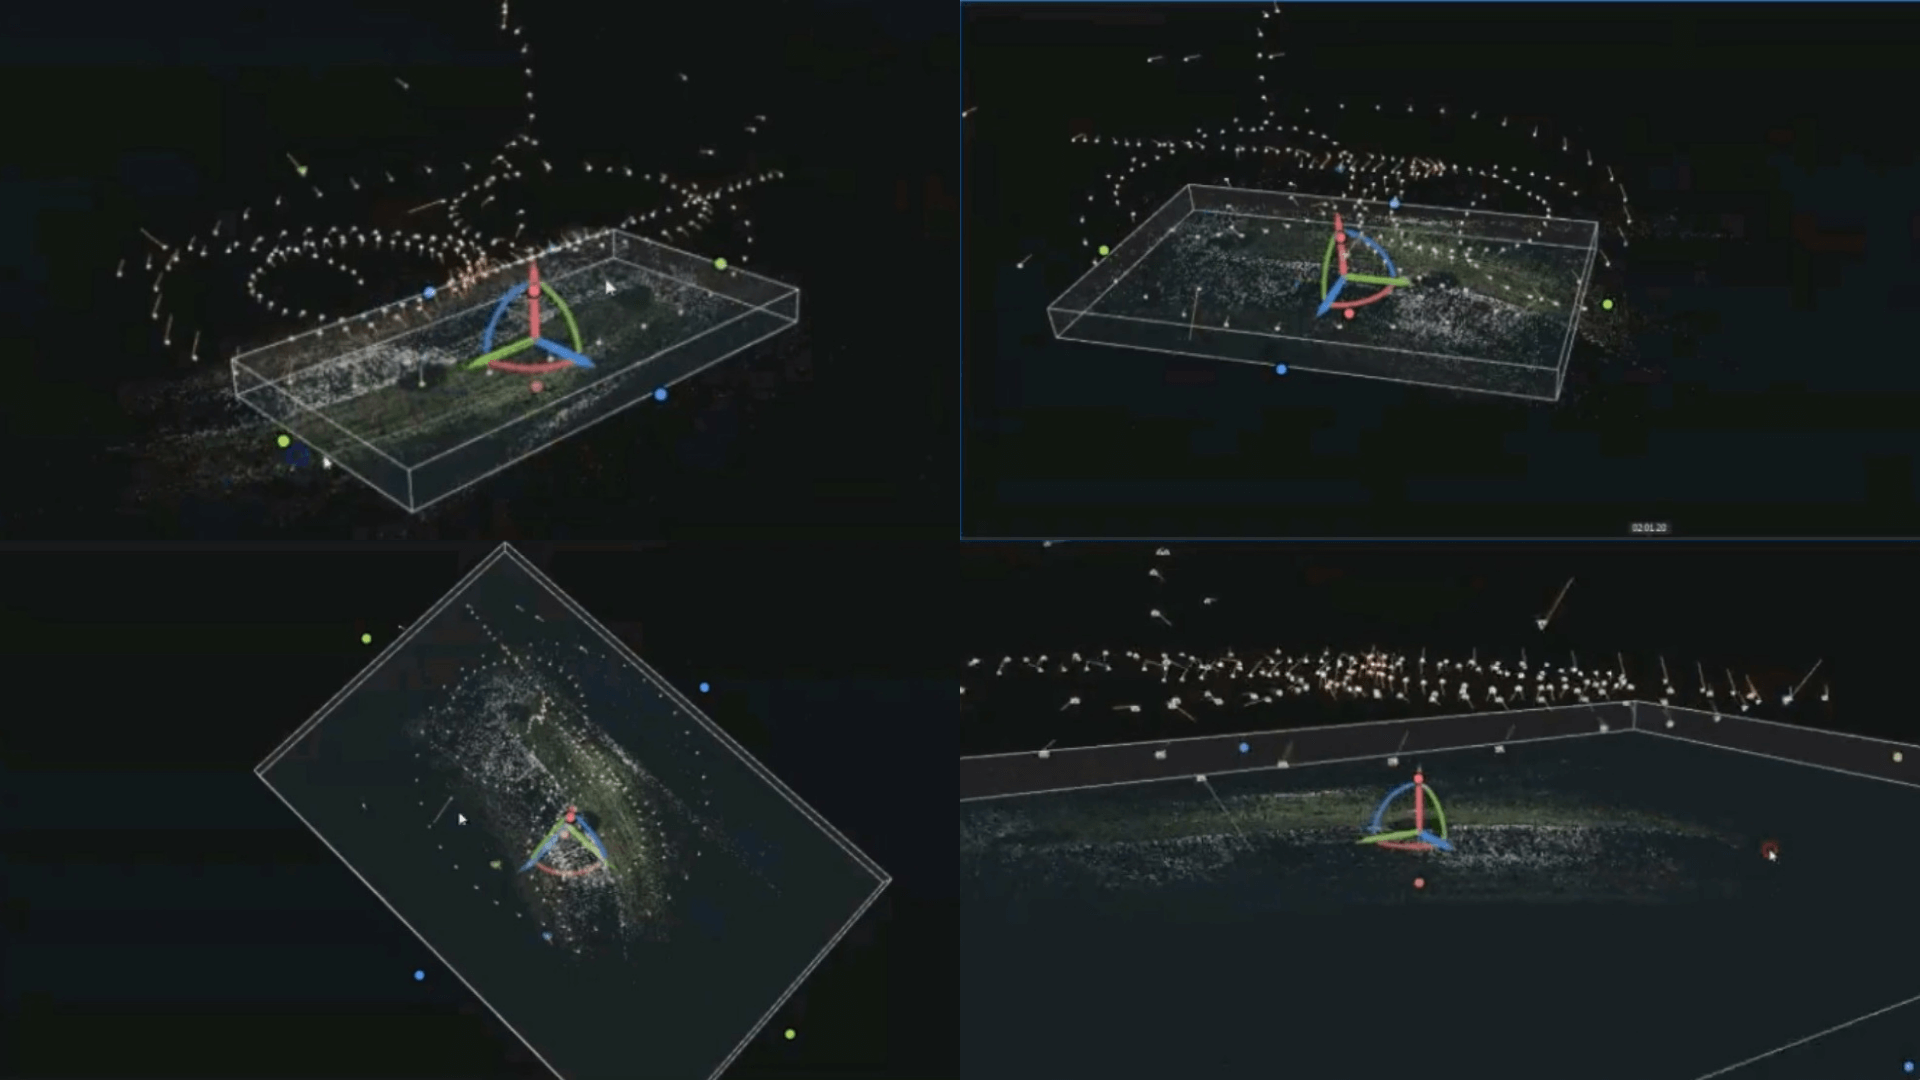 Once you have your drone data, upload it into photogrammetry software and create a point cloud.